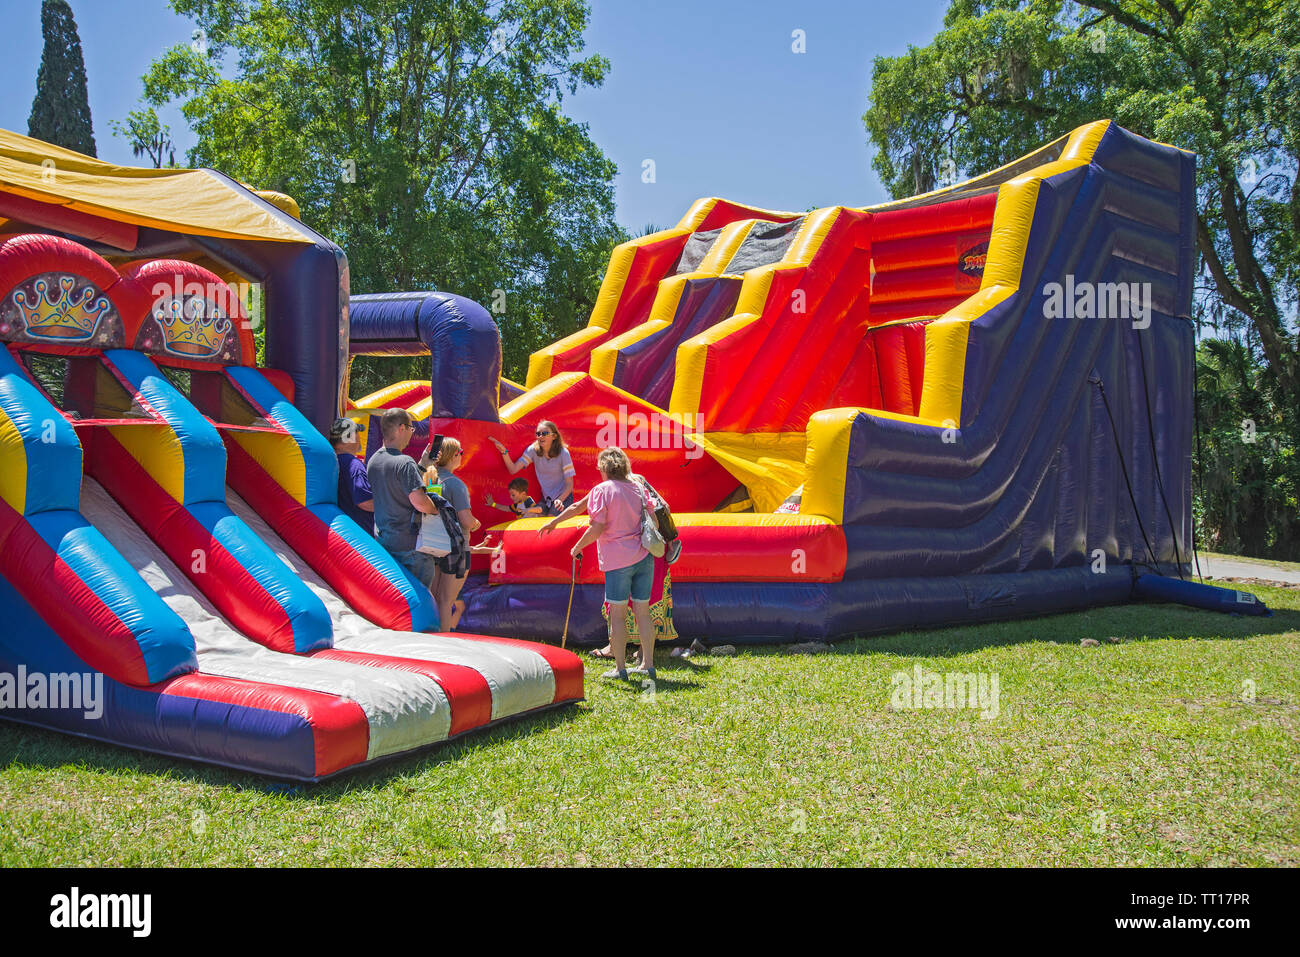 Daredevil Island extreme inflatable at Pioneer Days annual festival in High Springs, Florida. - Stock Image